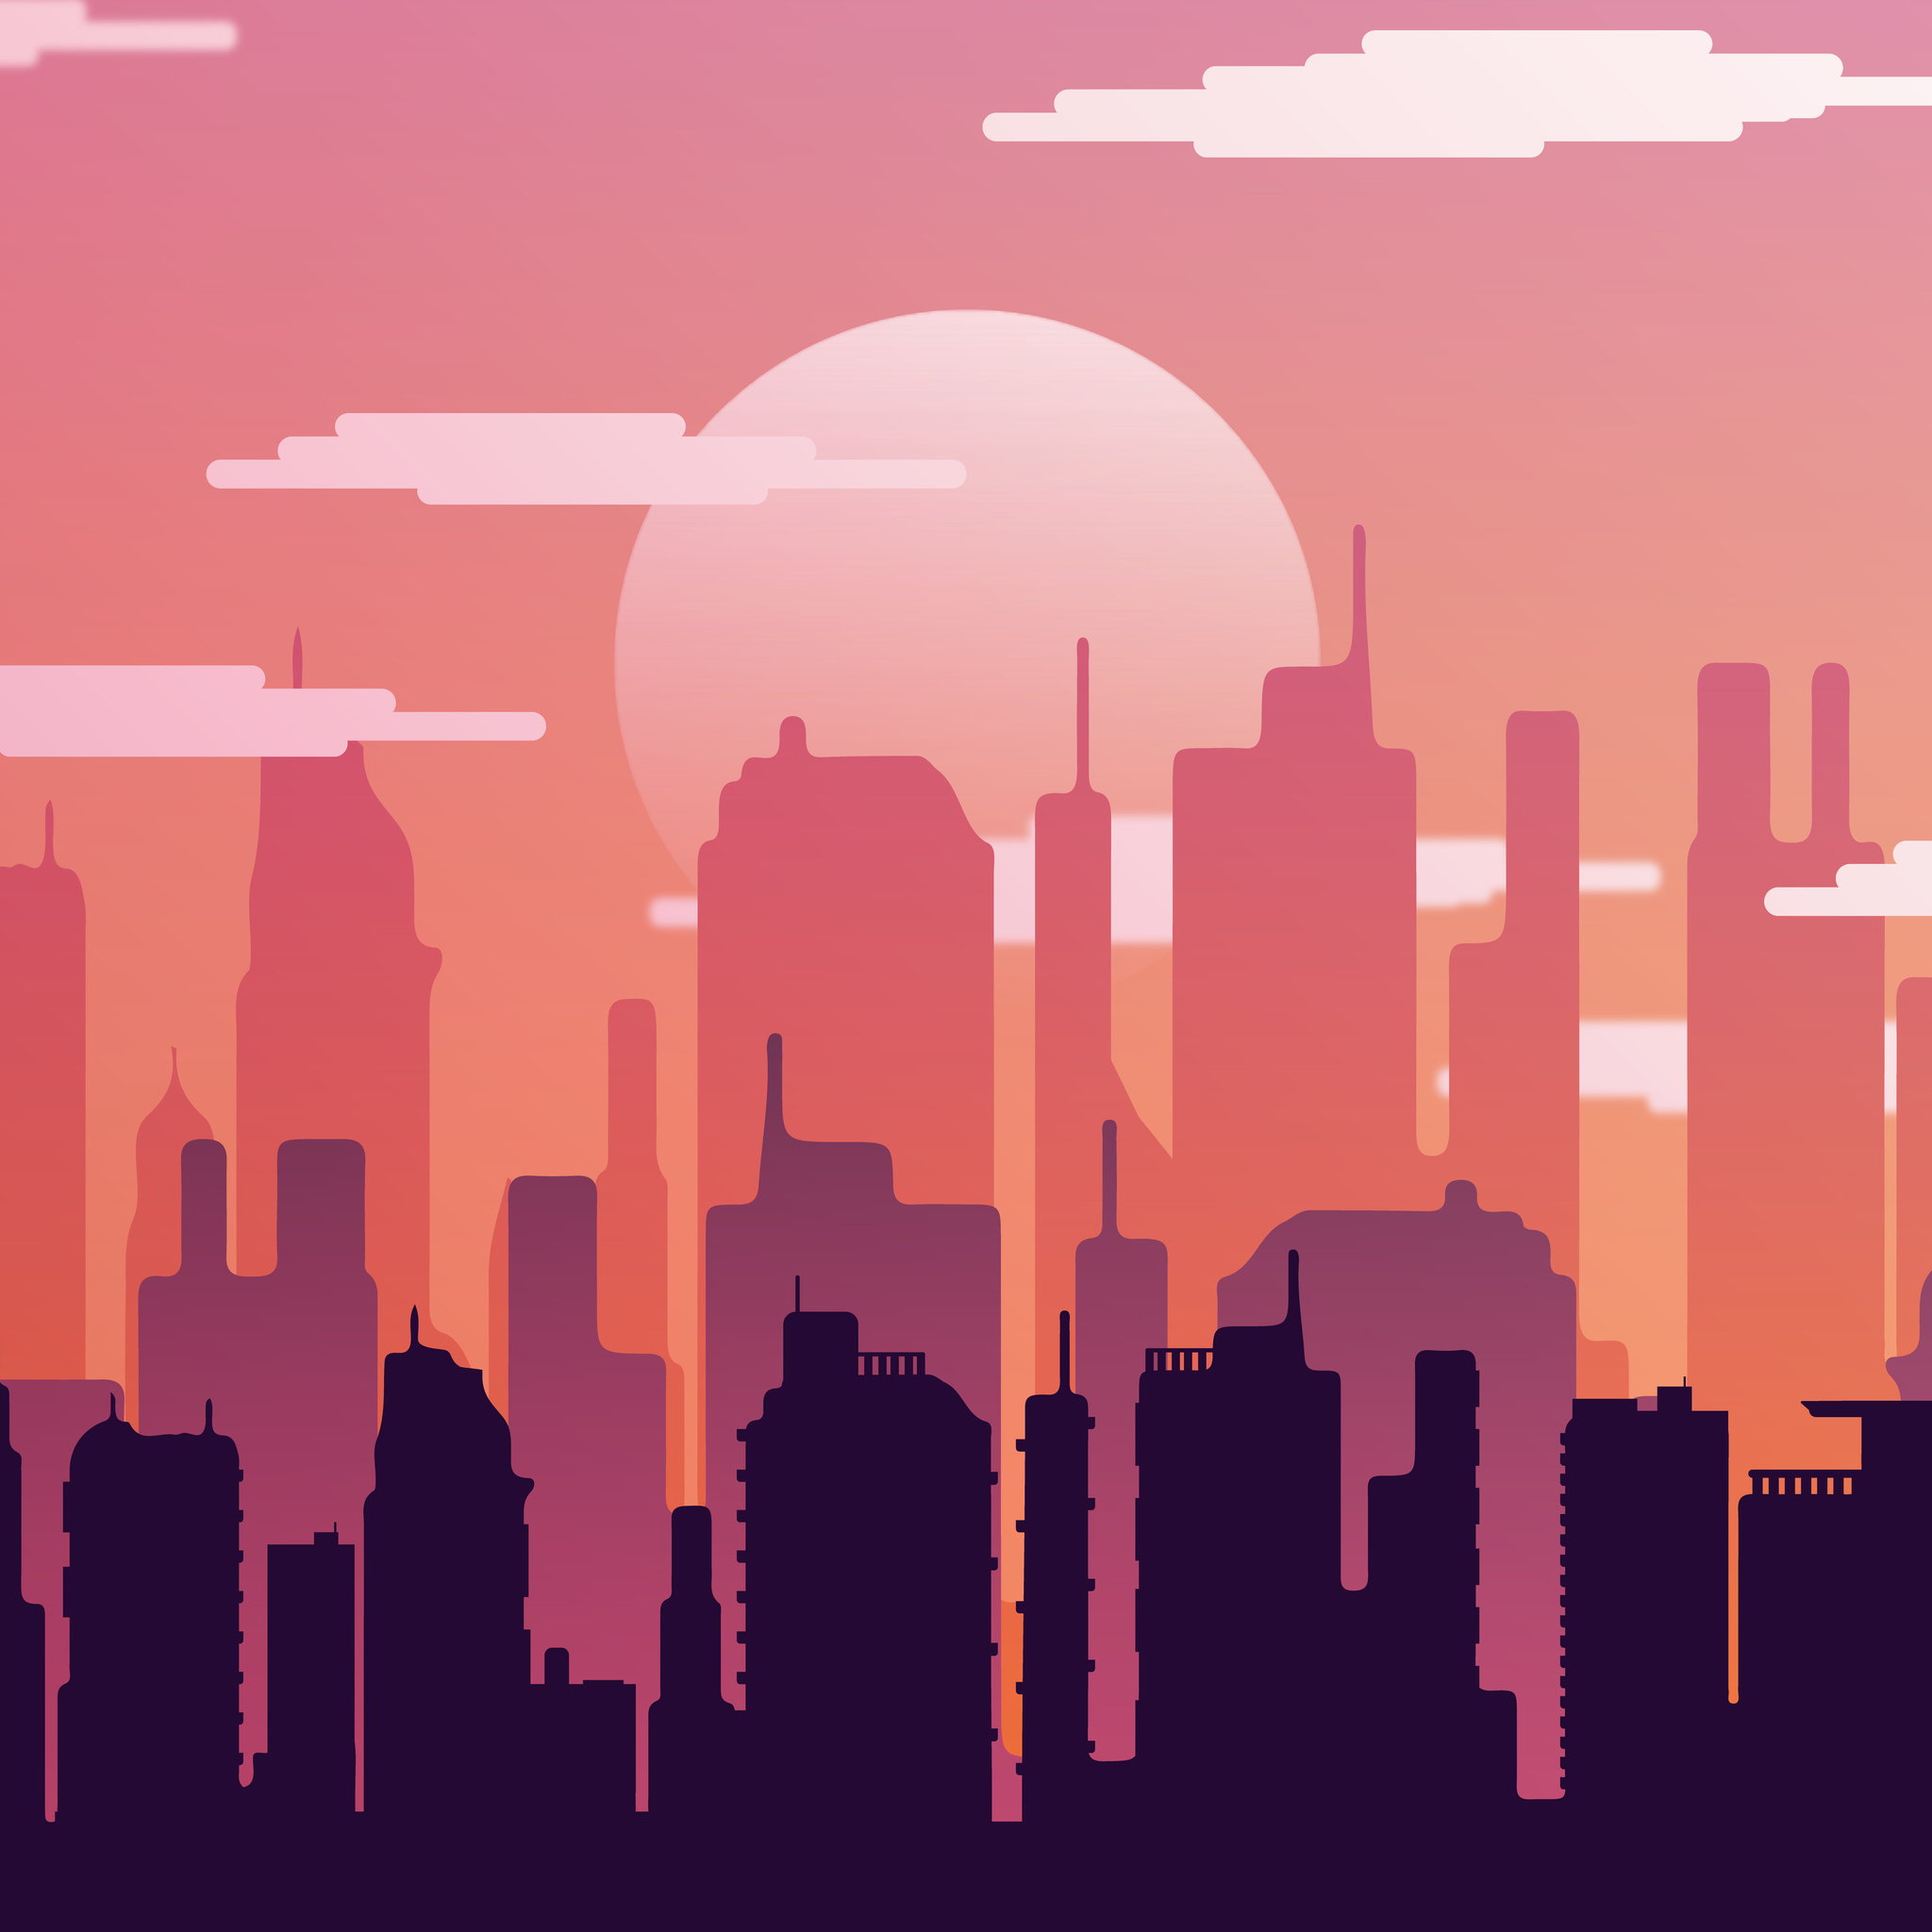 buildings-city-silhouette-10k-tk.jpg